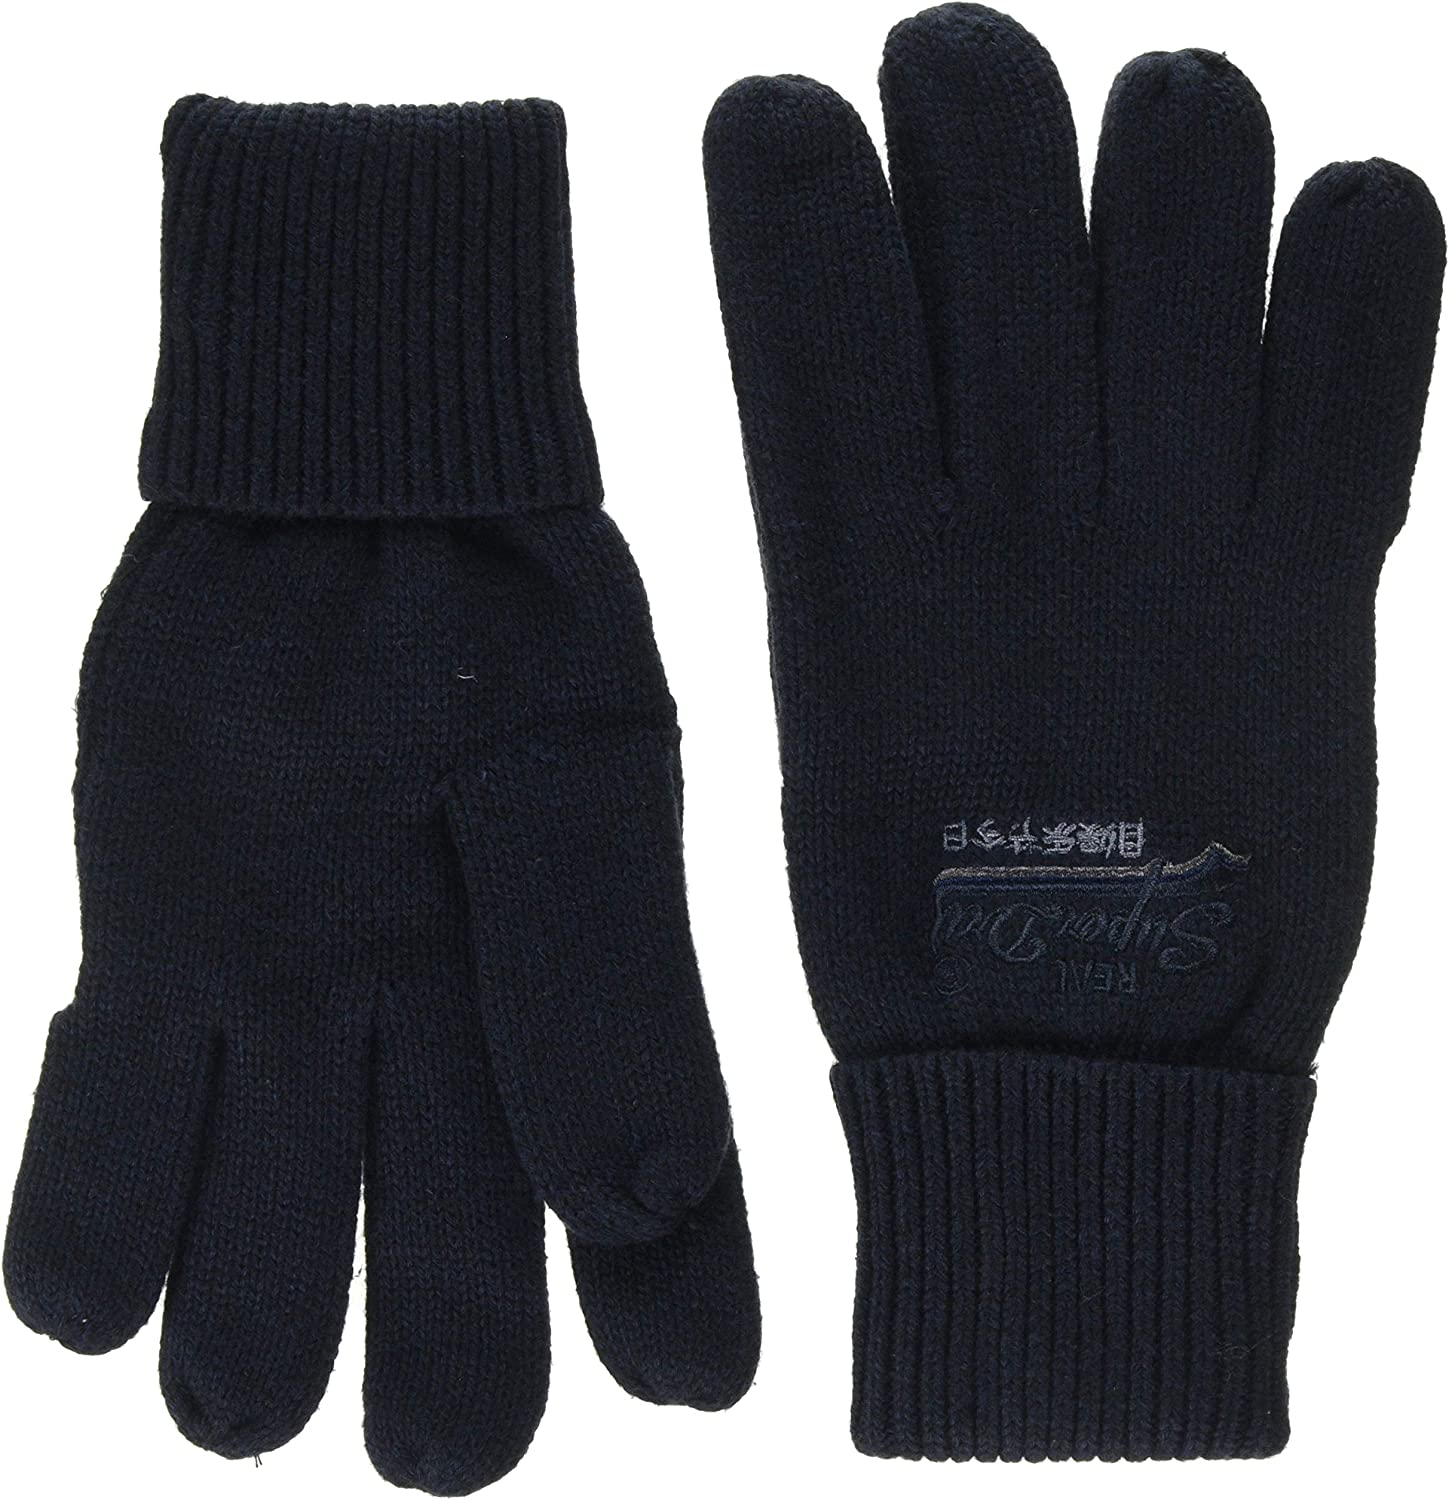 Superdry Mens Orange Label Glove